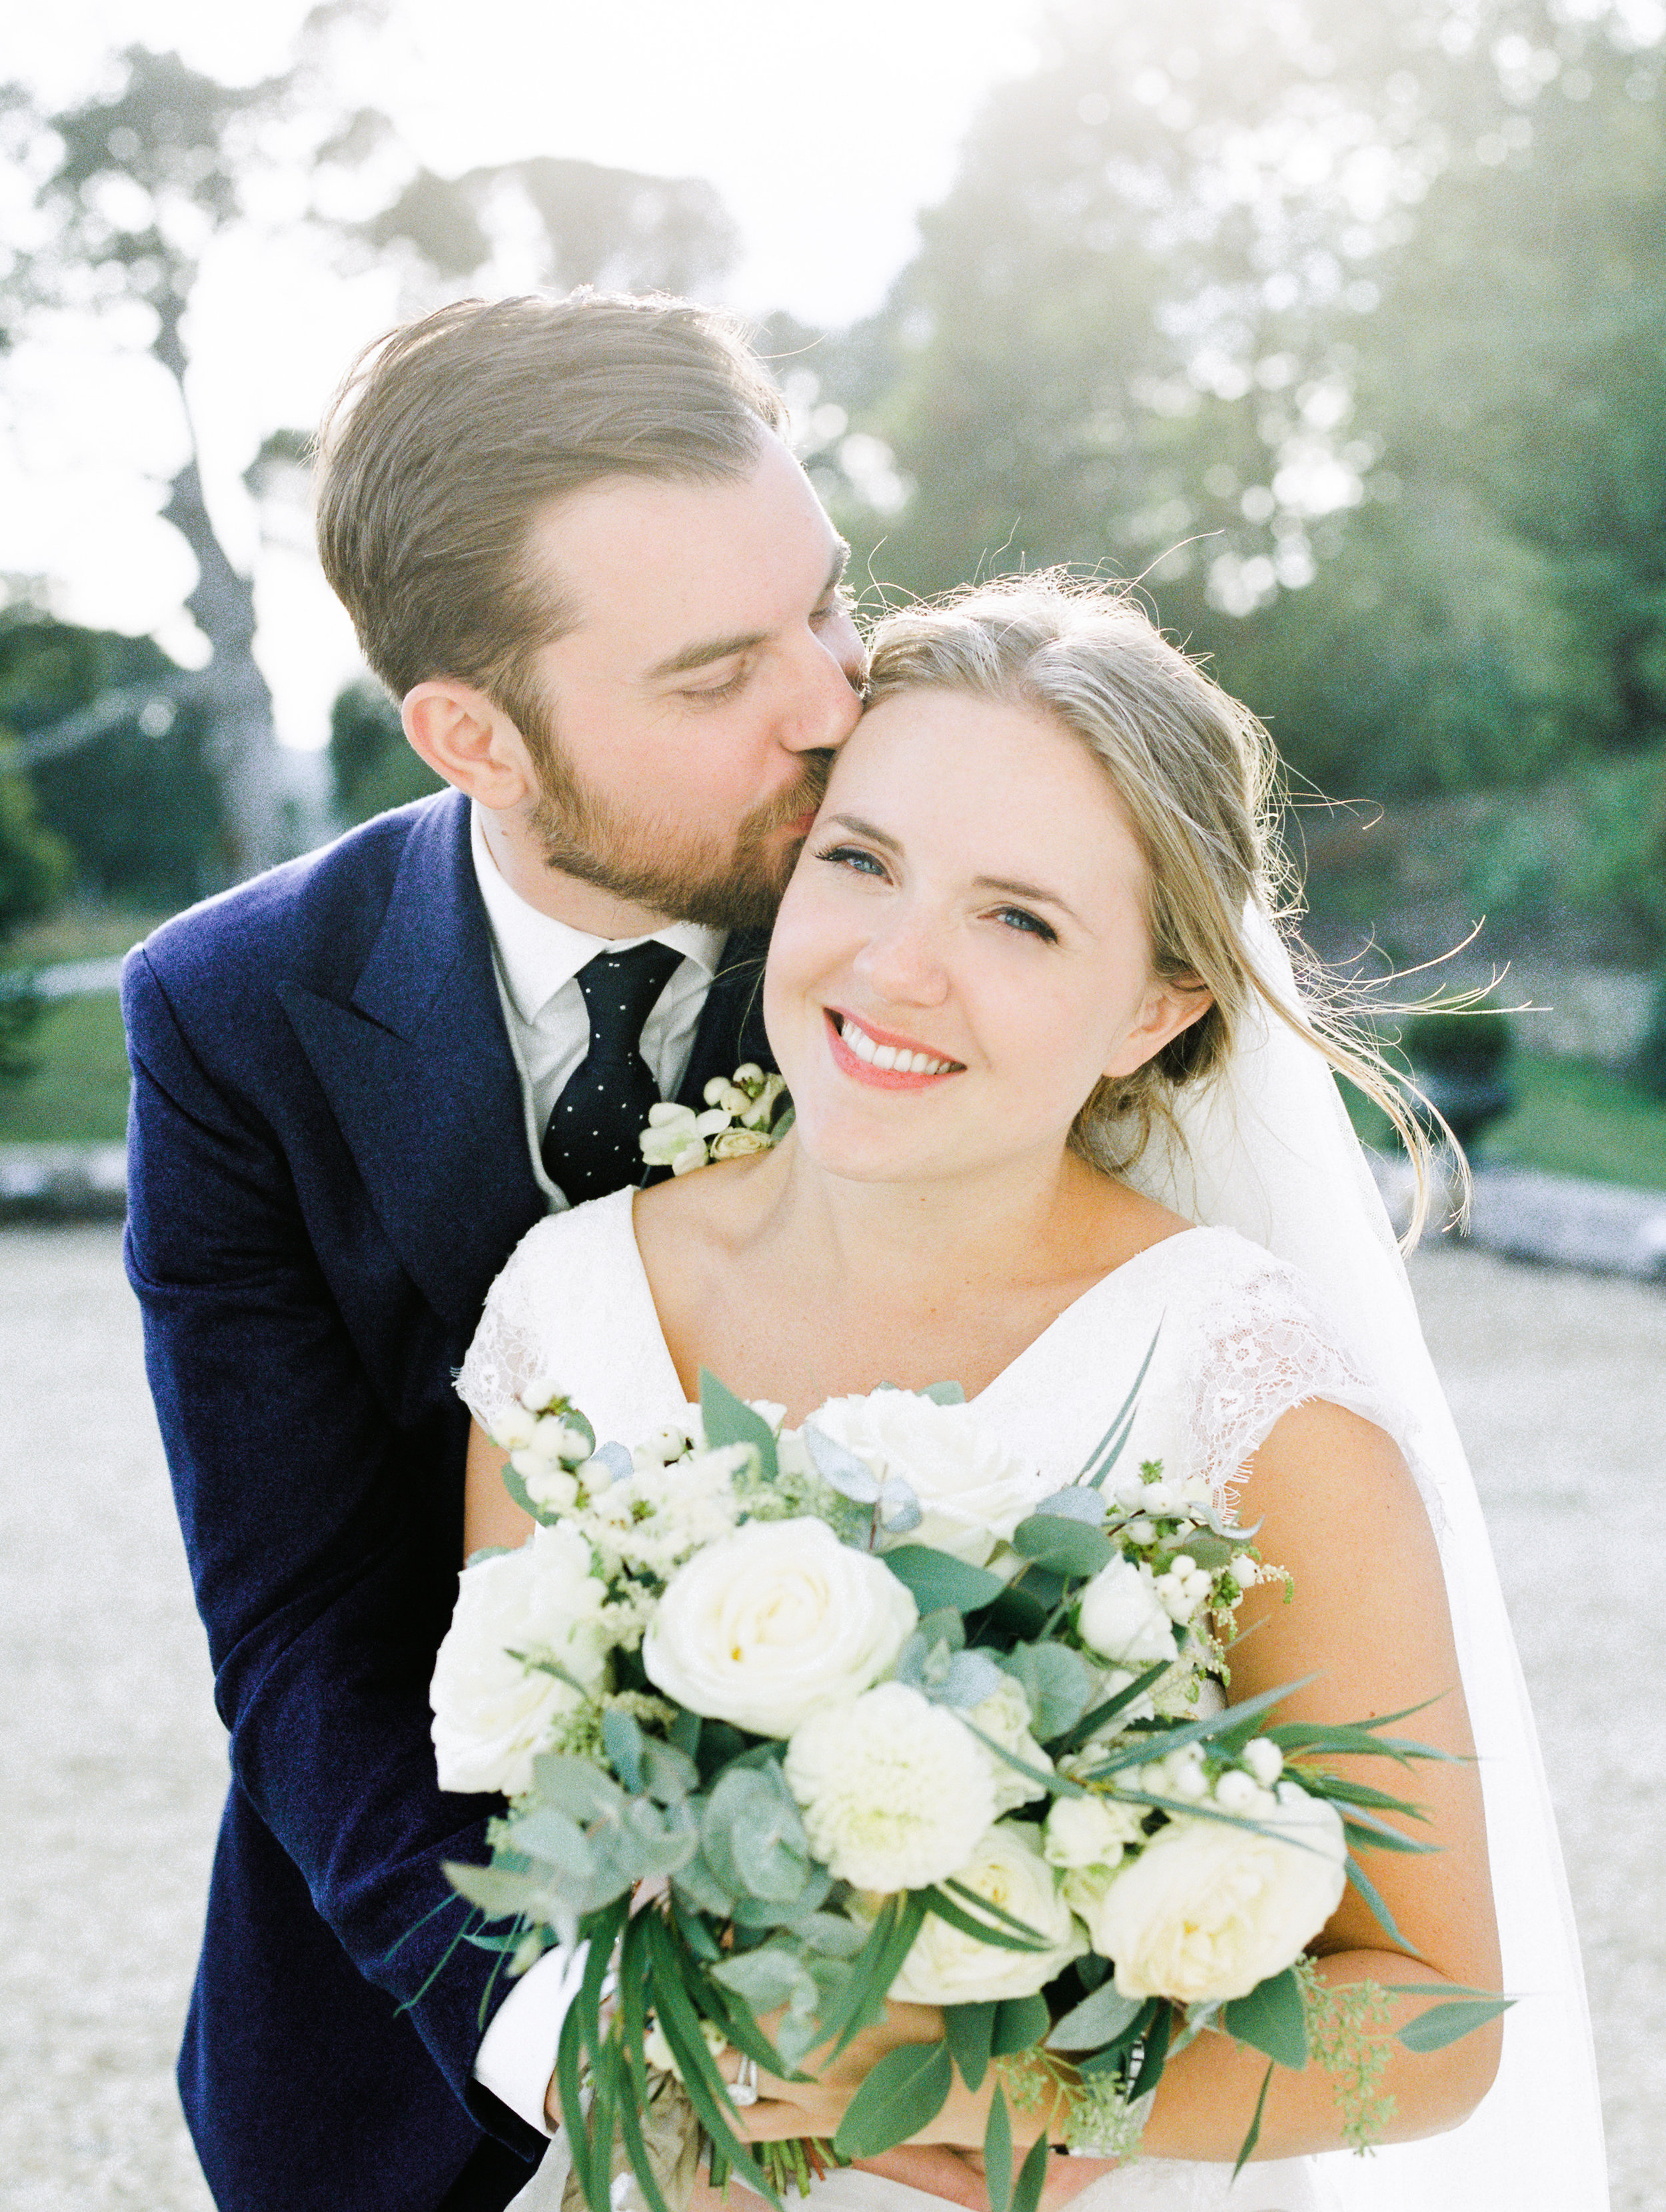 Lily & Sage_Luxury Wedding Planner UK_Sophie & Chris' English Country House Wedding Soft Pale Blue White and Silver Toned Green Neutral Tones Overseas Singapore Pynes House_Andrew & Ada Photography 280-4.jpg